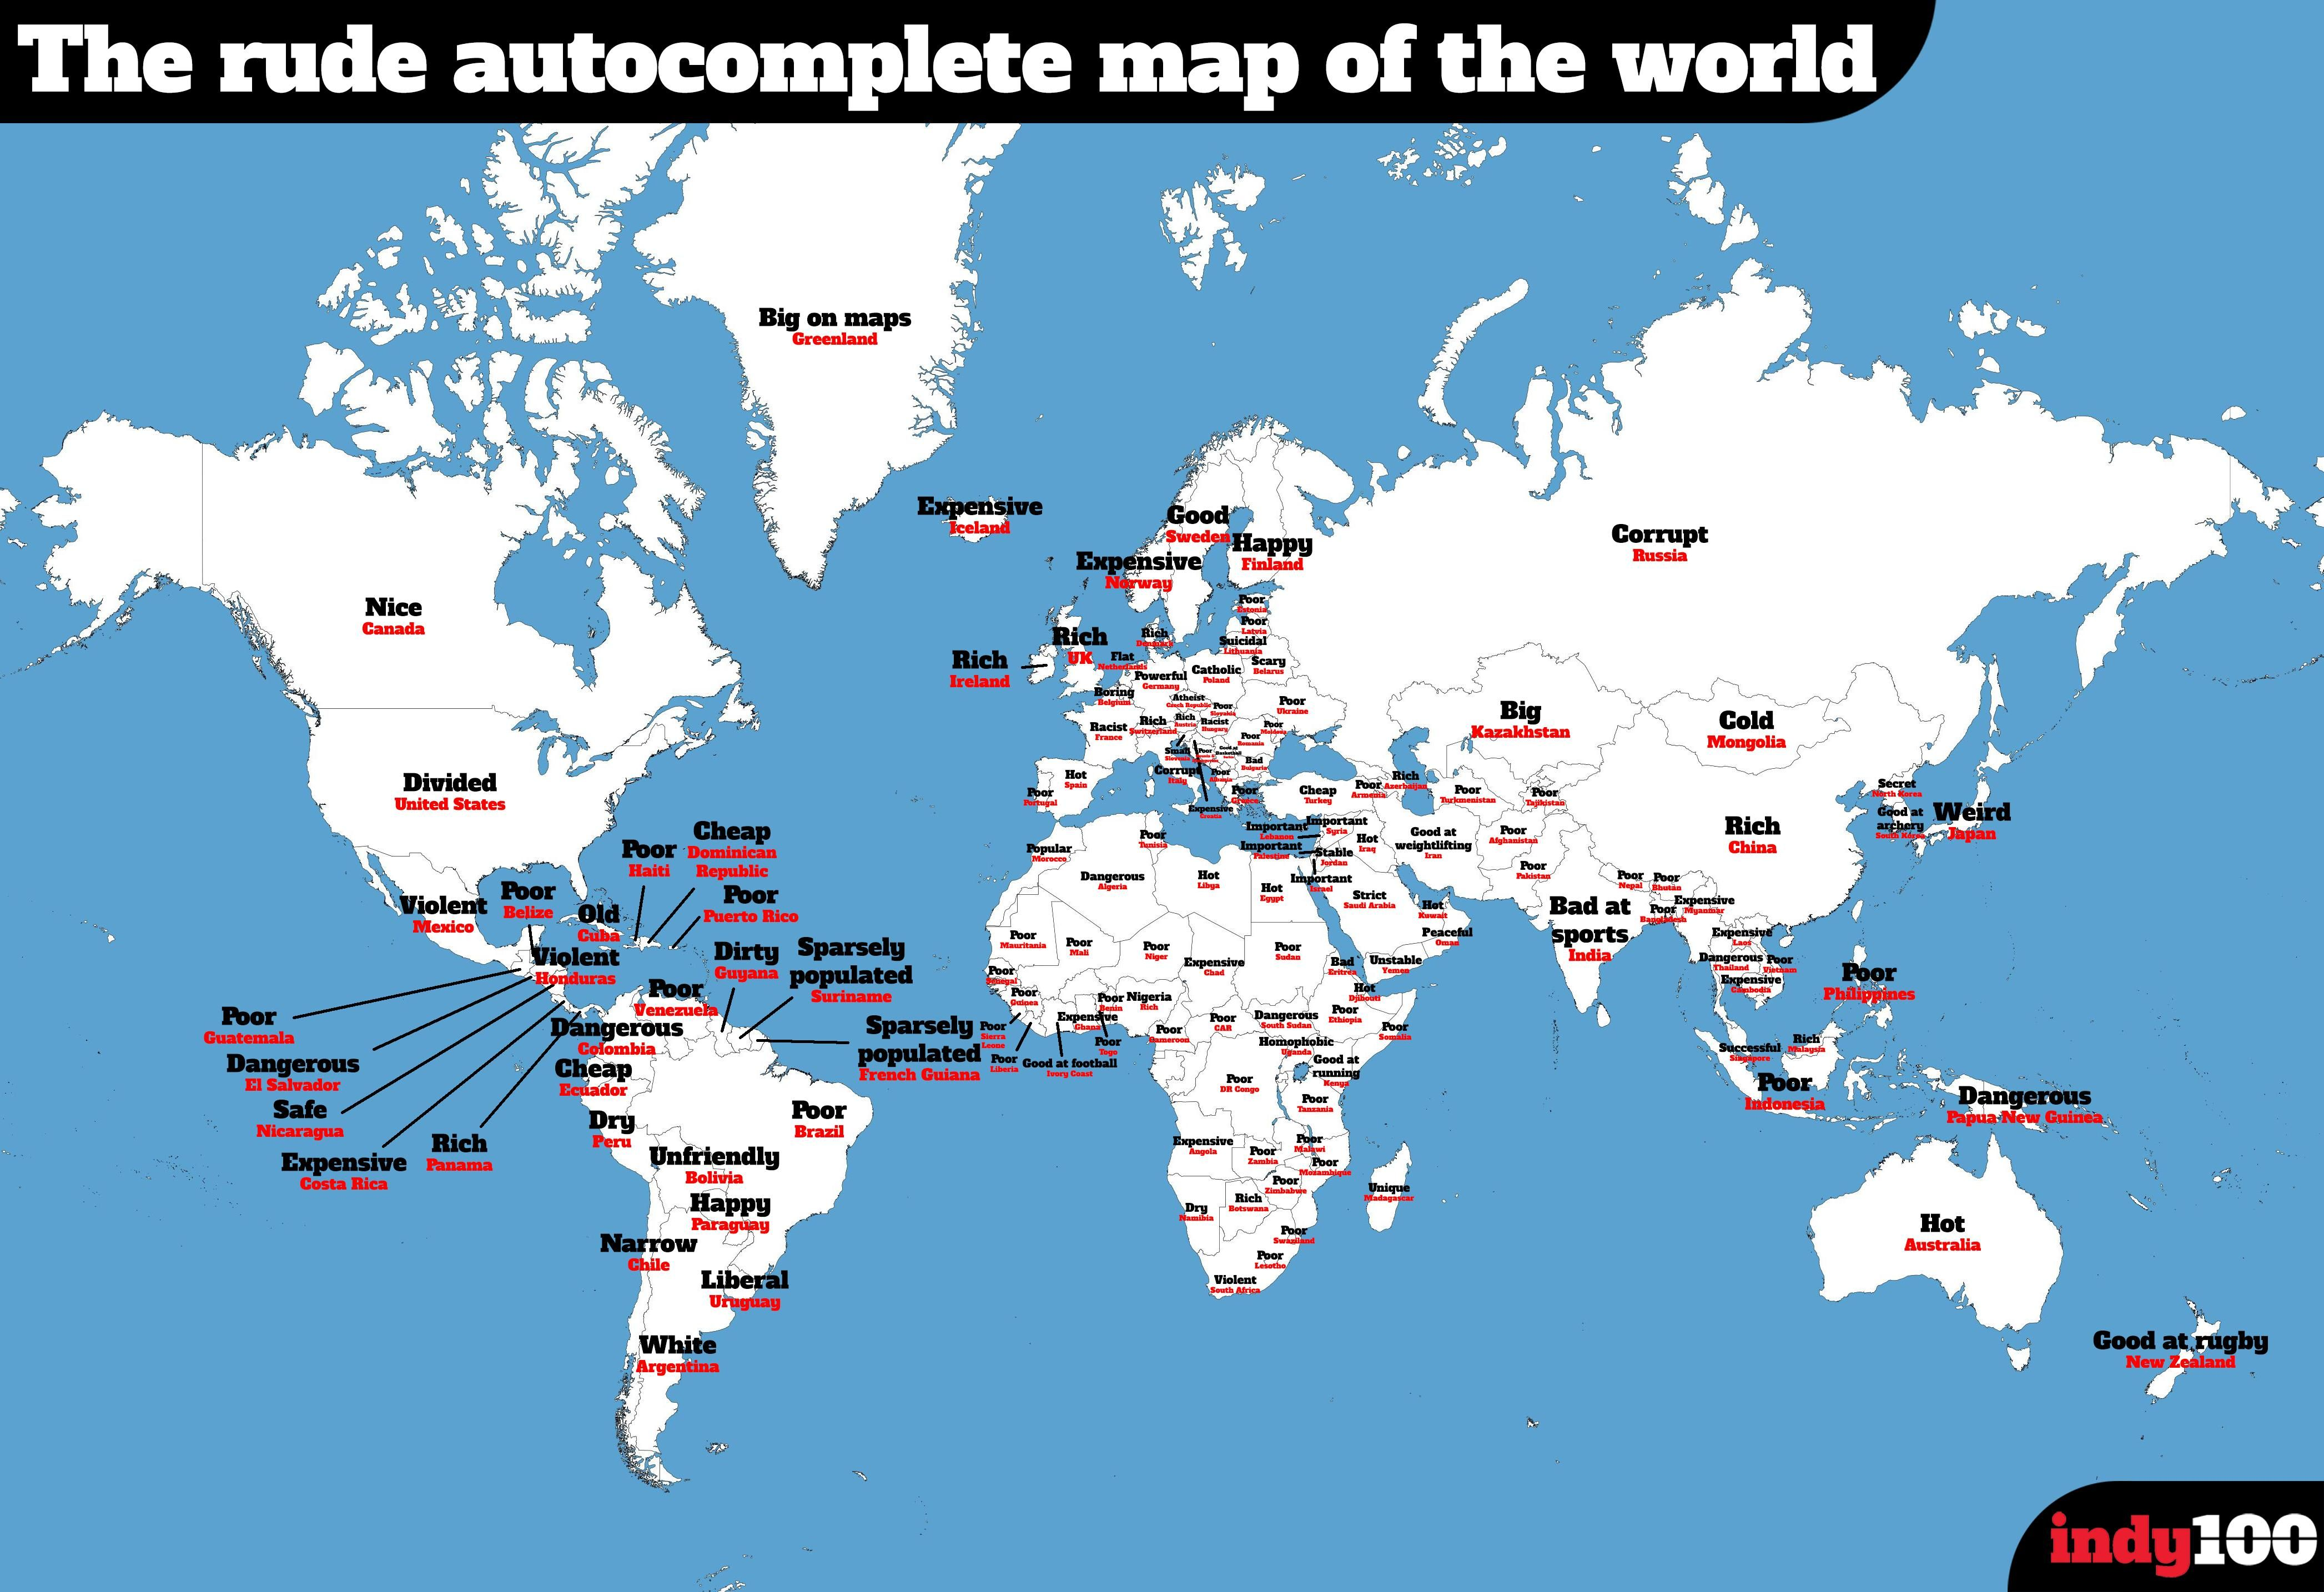 The Offensive Map Of The World According To Uk Google S Autocomplete